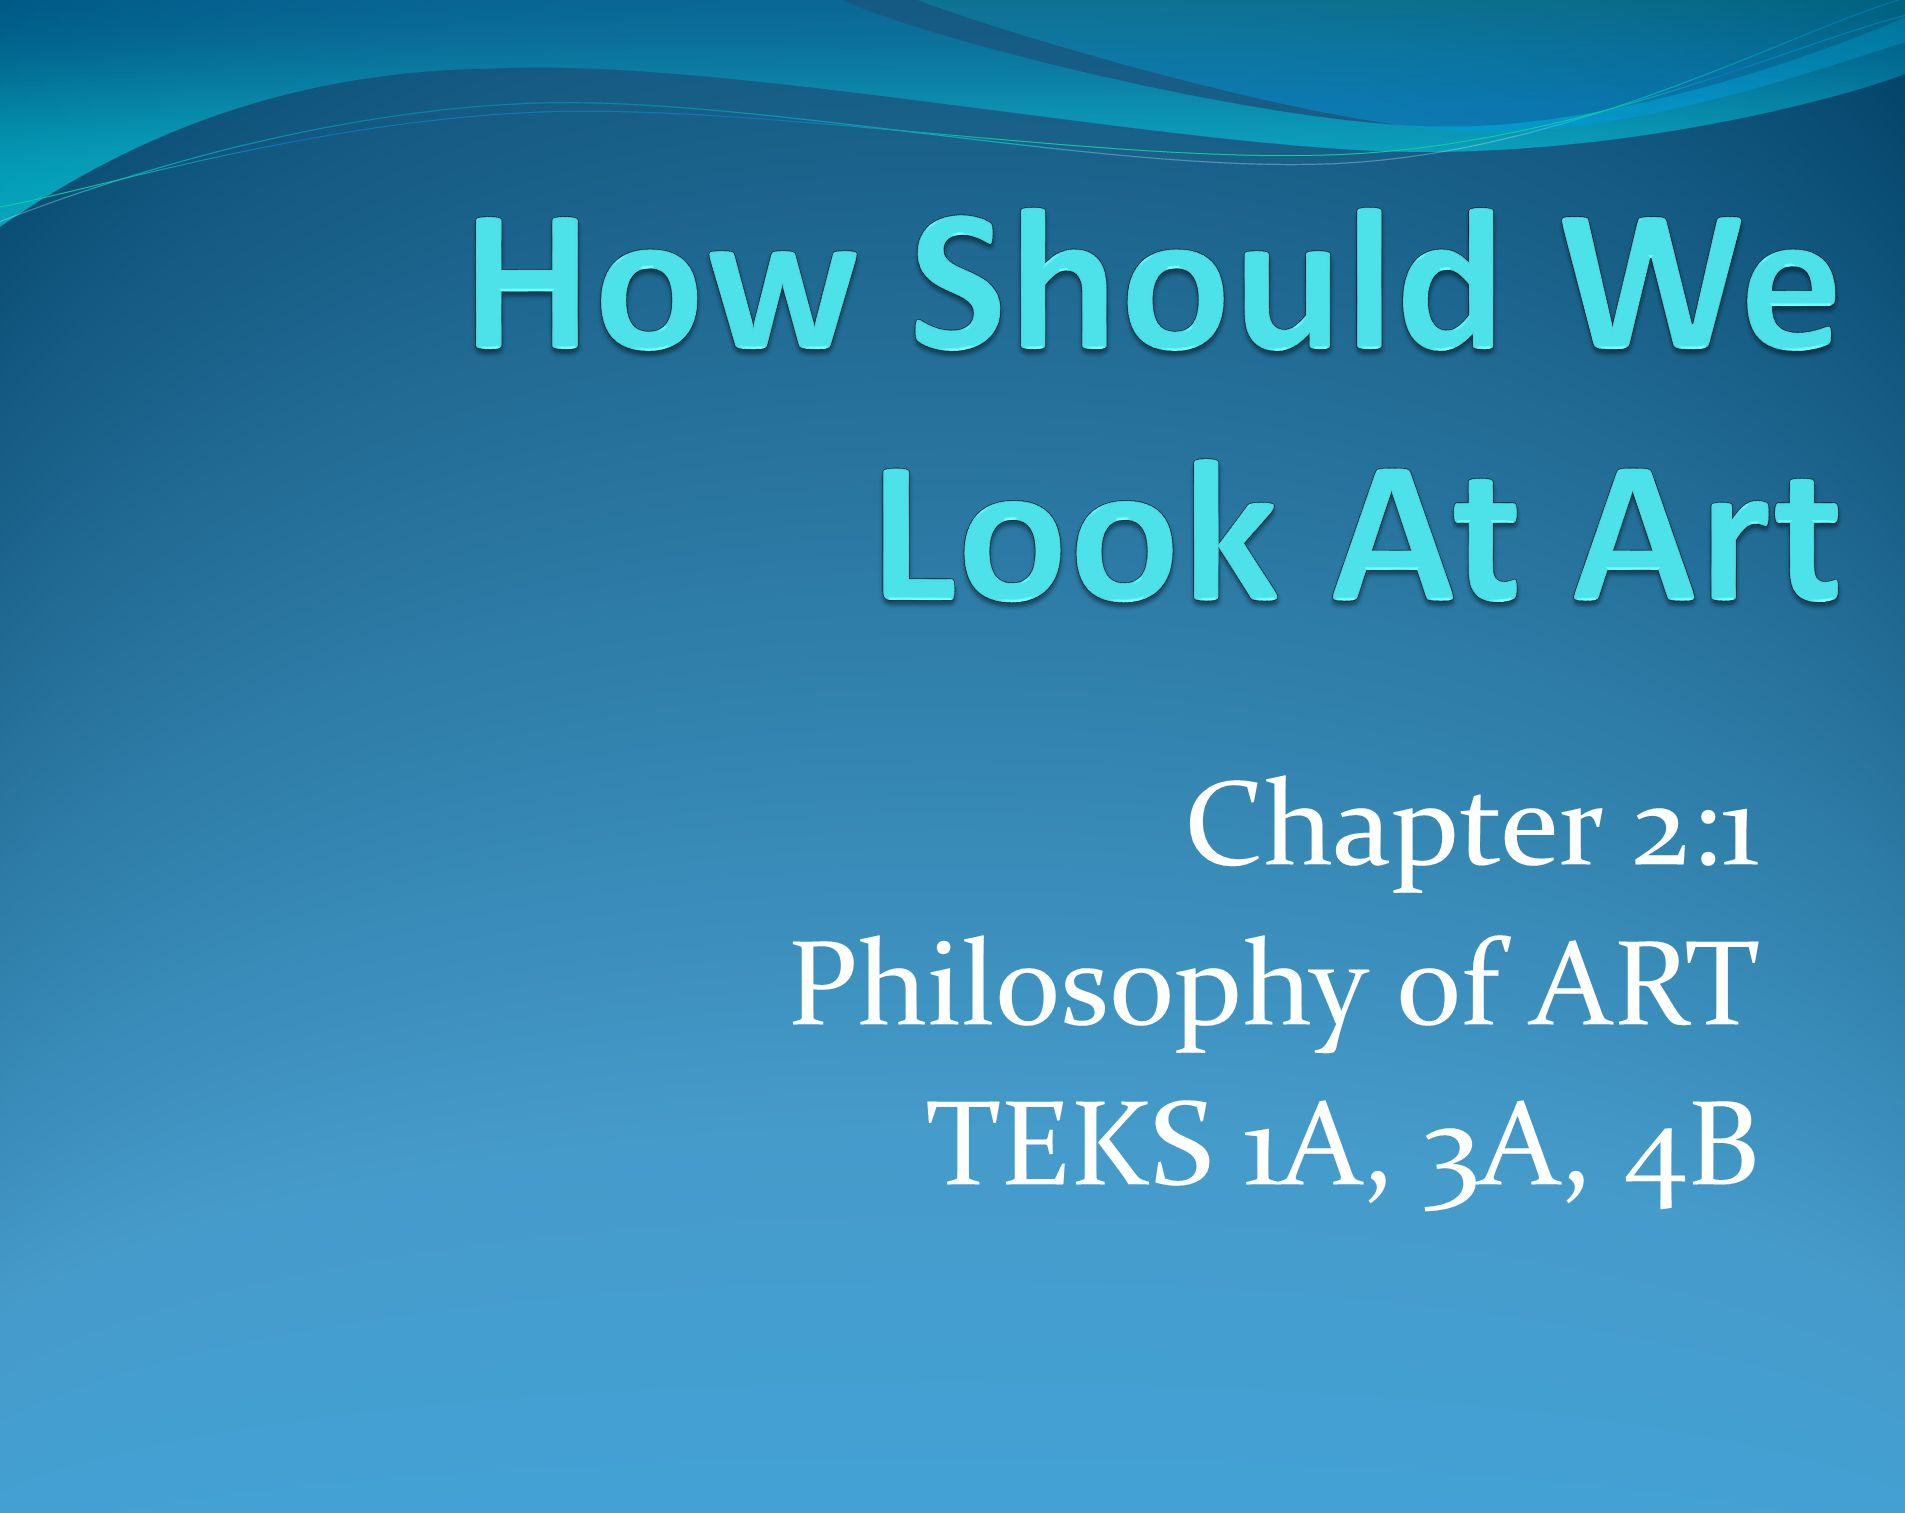 Chapter 2:1 Philosophy of ART TEKS 1A, 3A, 4B